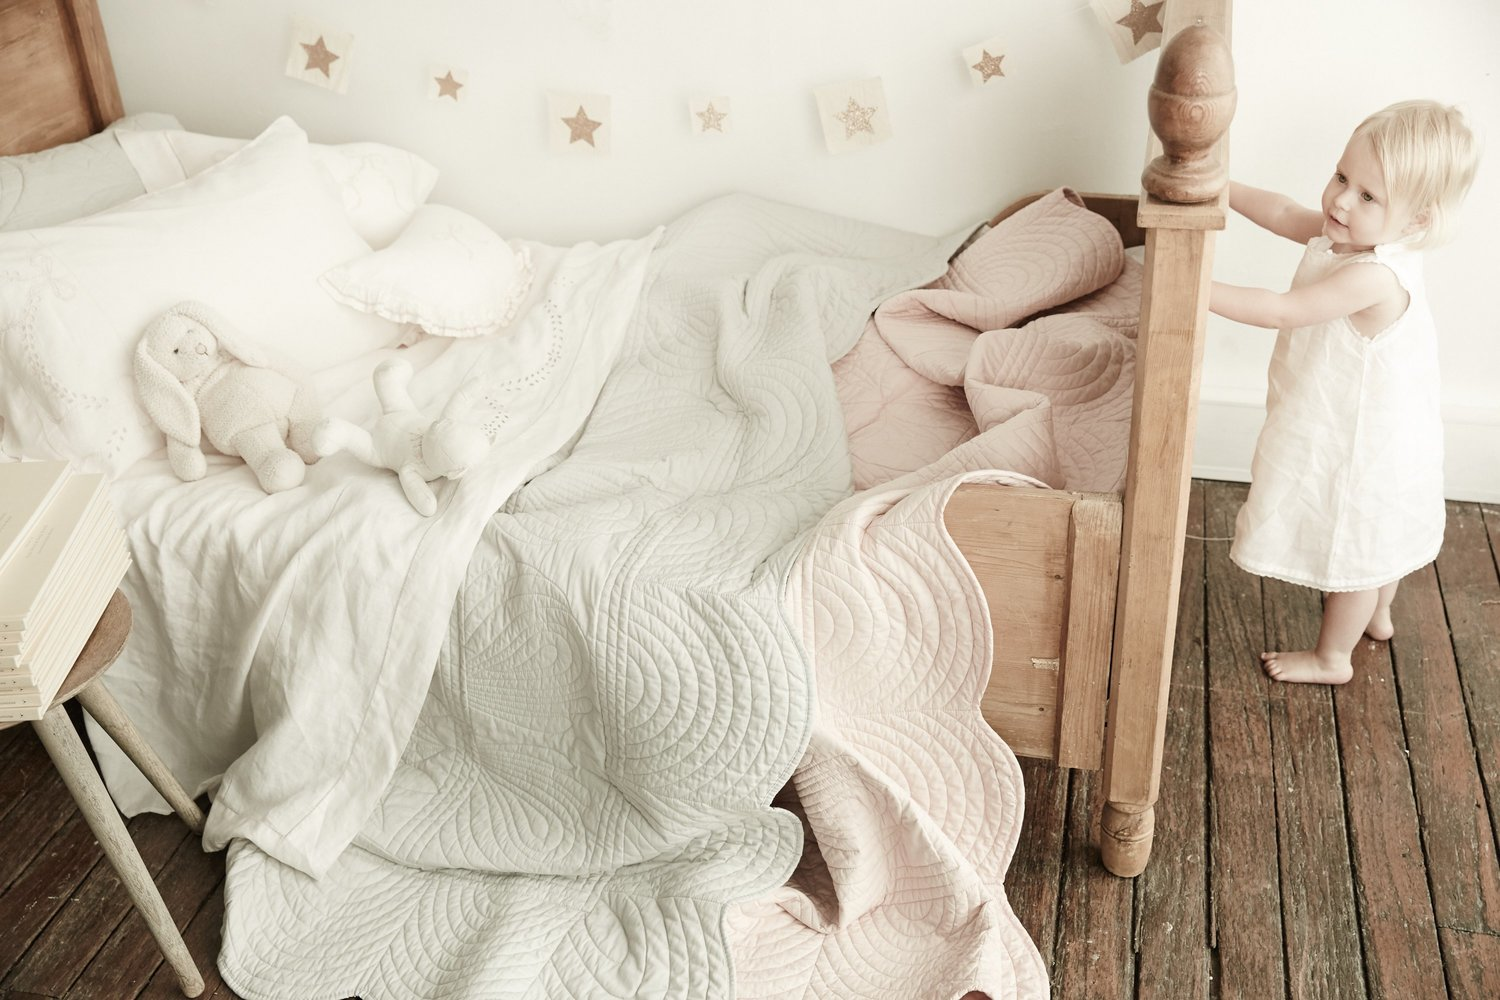 King Single Bedspread Quilt and Pillow Set - Shell Pink — Bonne ... : single quilted bedspreads - Adamdwight.com